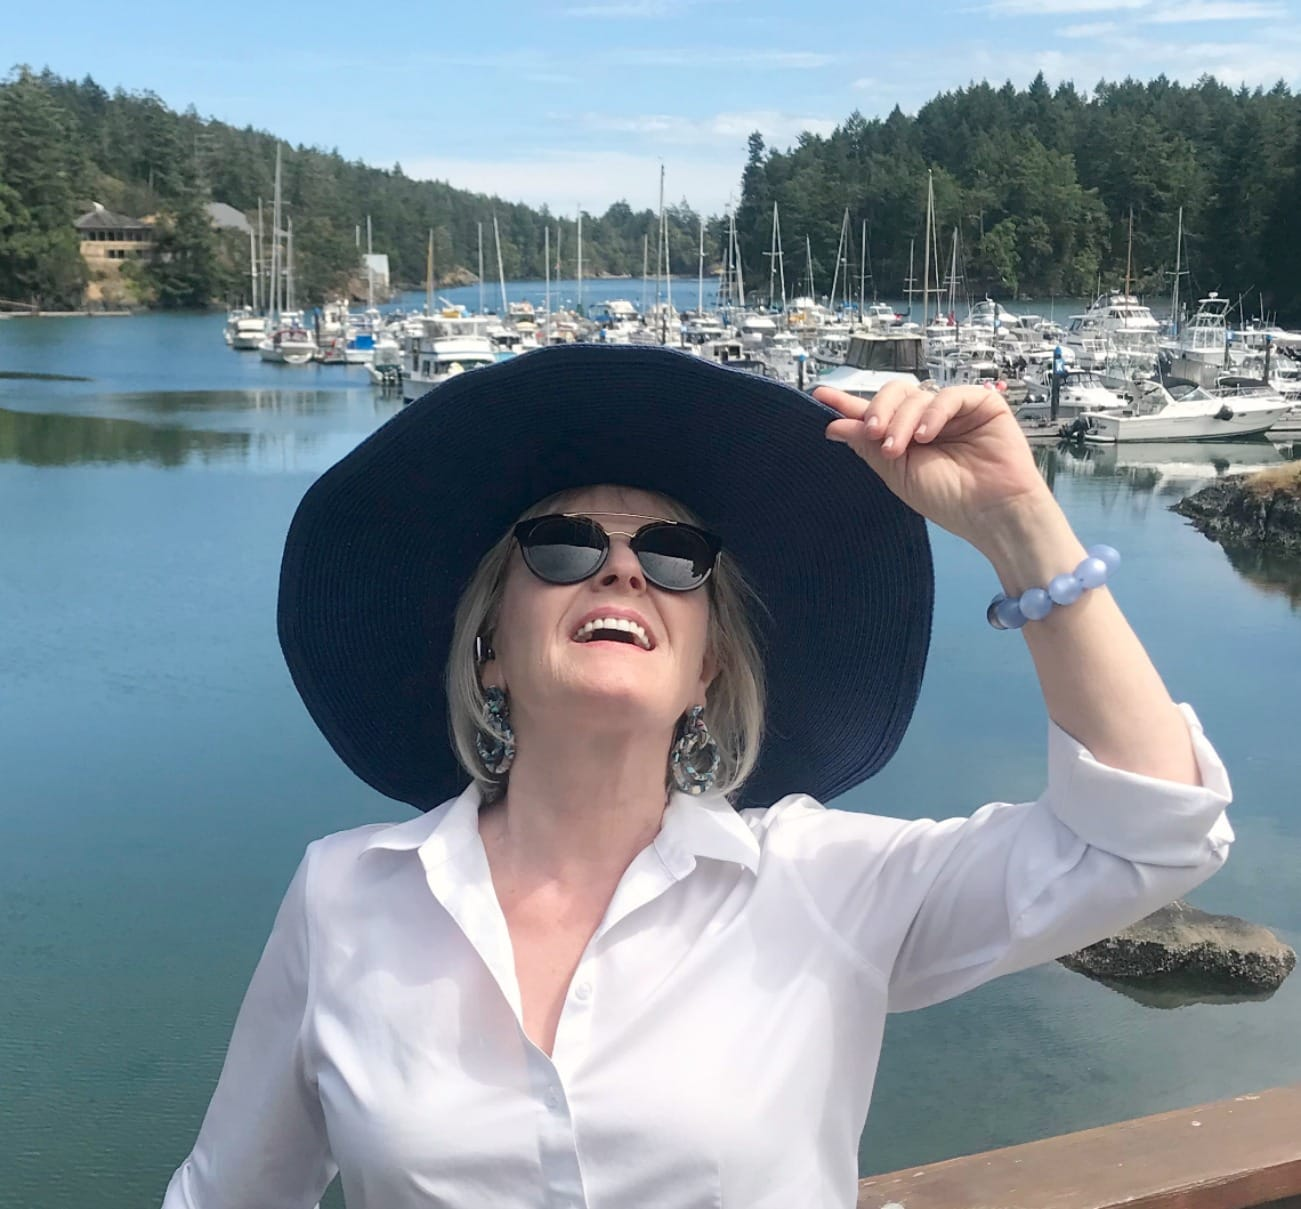 Jennifer Connolly of A Well Styled Life wearing large blue hat and white shirt at a marina